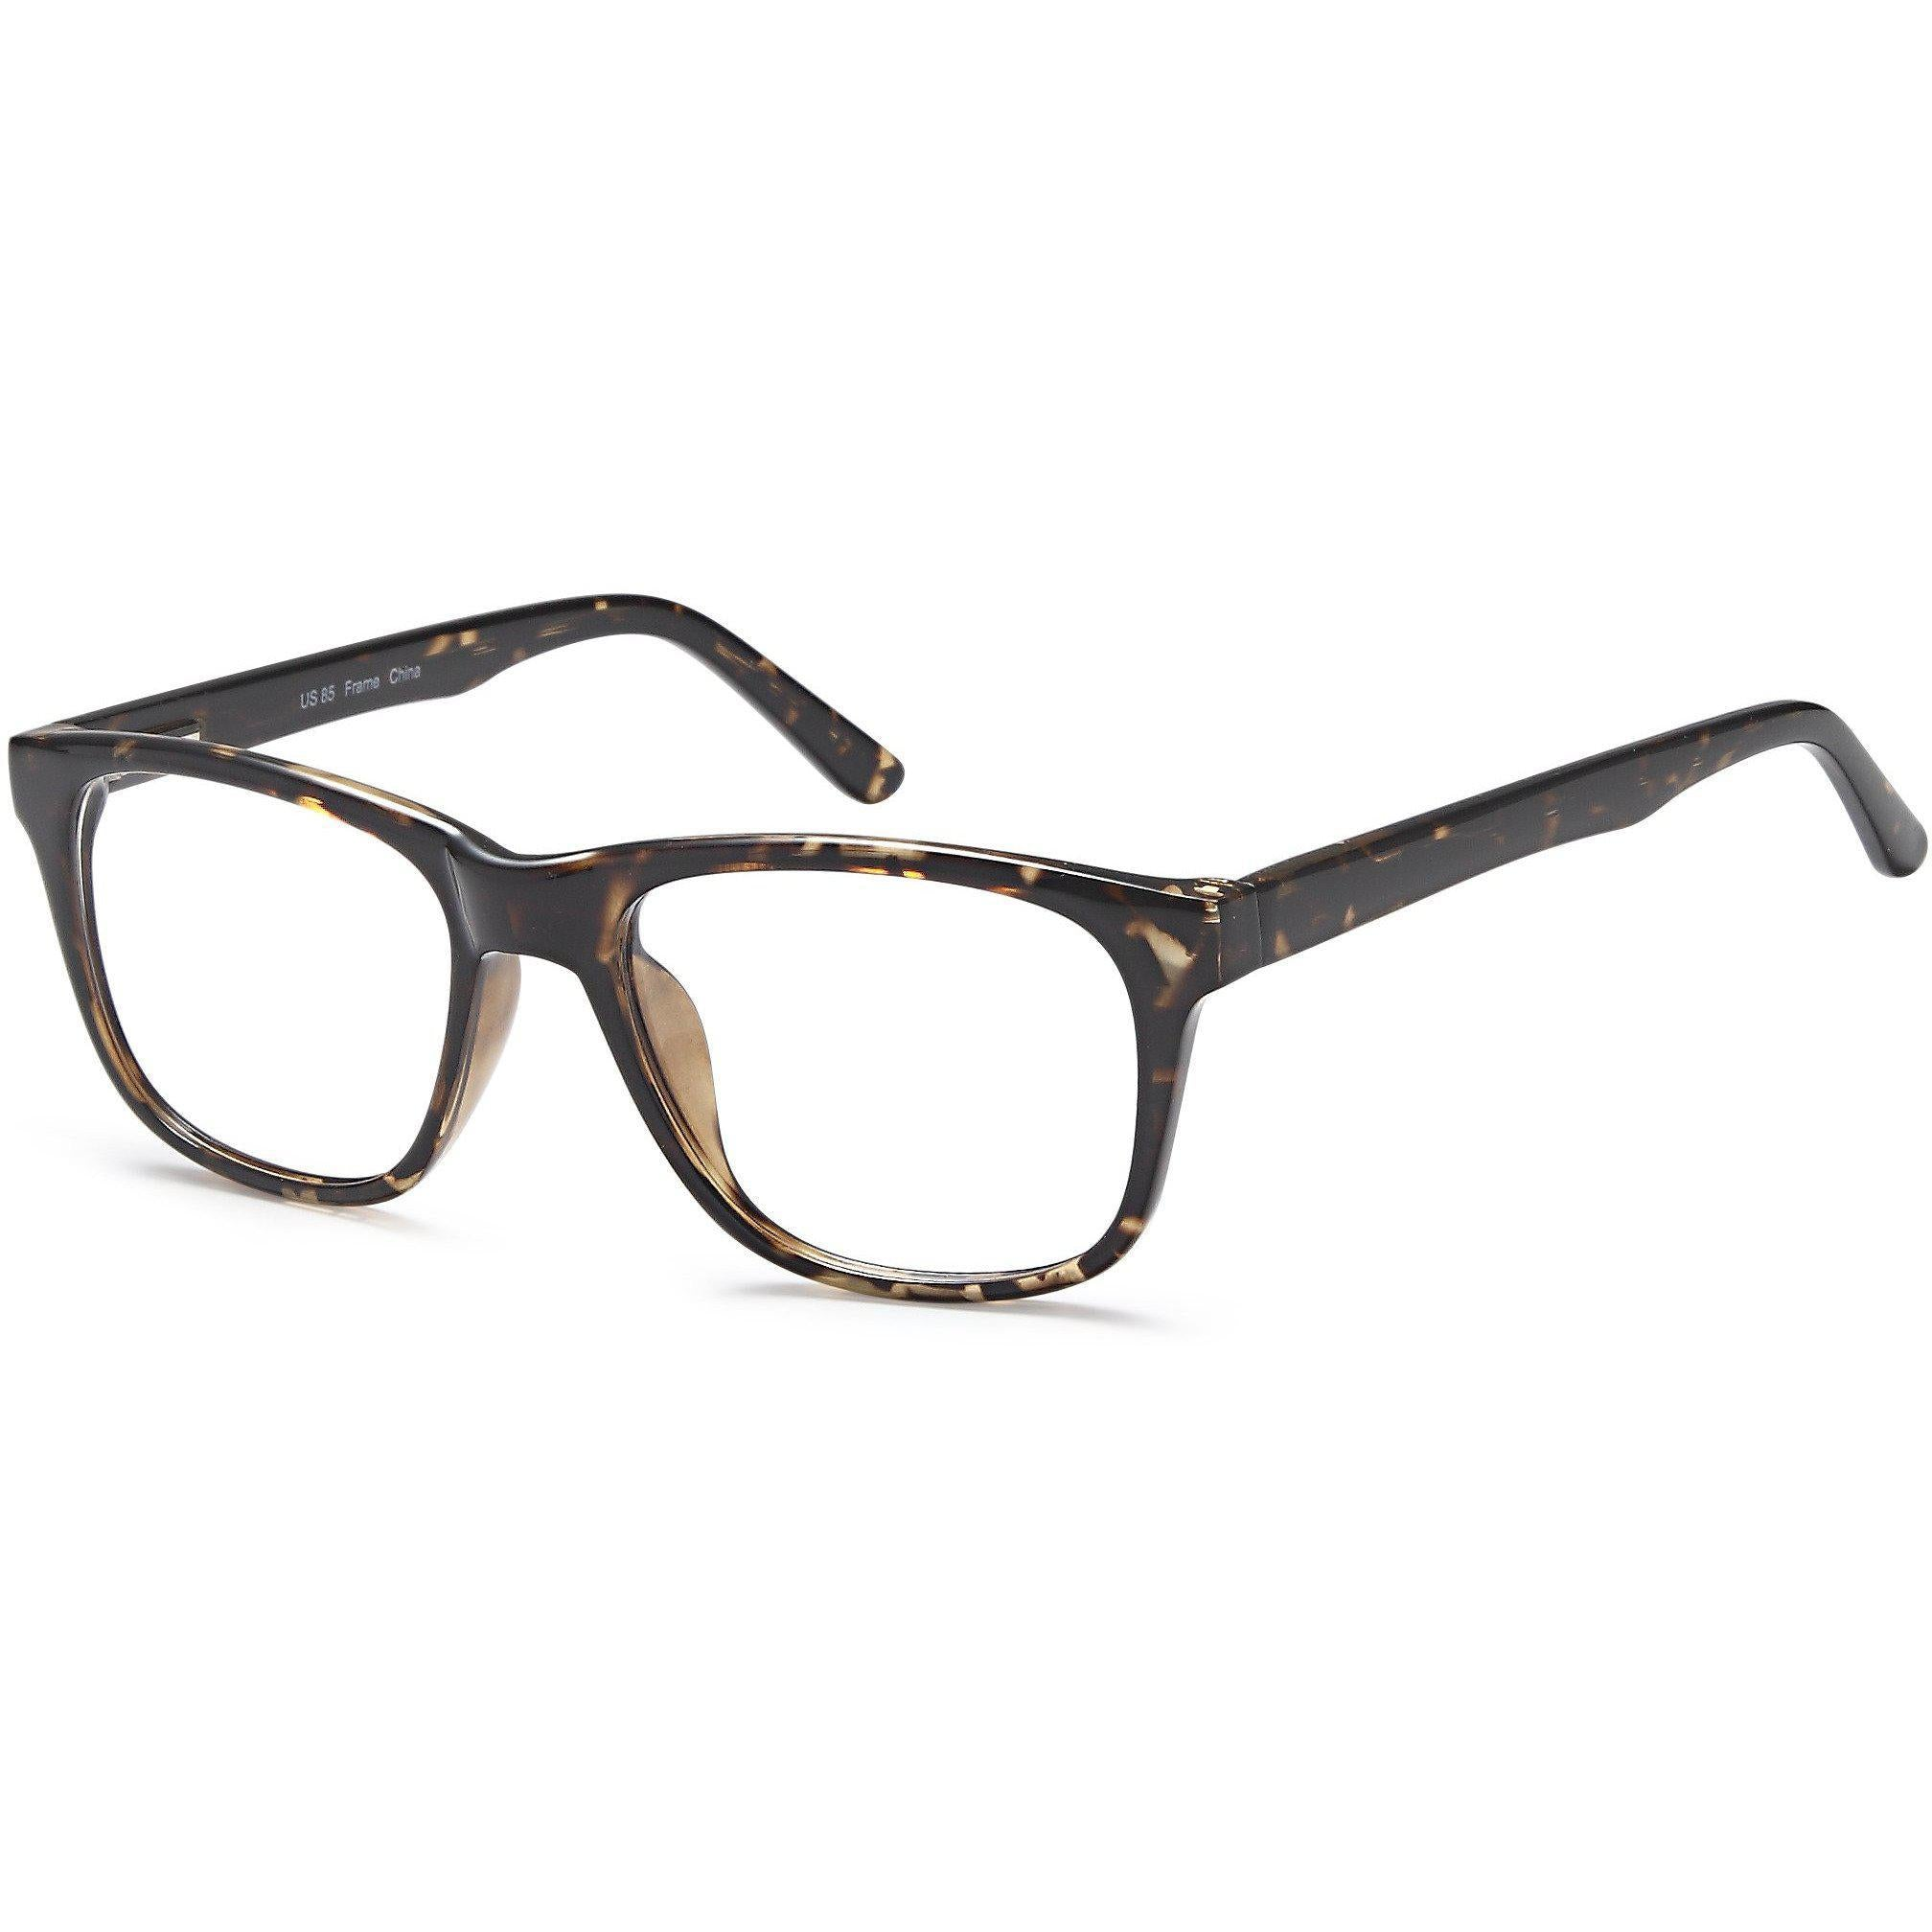 4U Prescription Glasses US 85 Optical Eyeglasses Frame - timetoshade